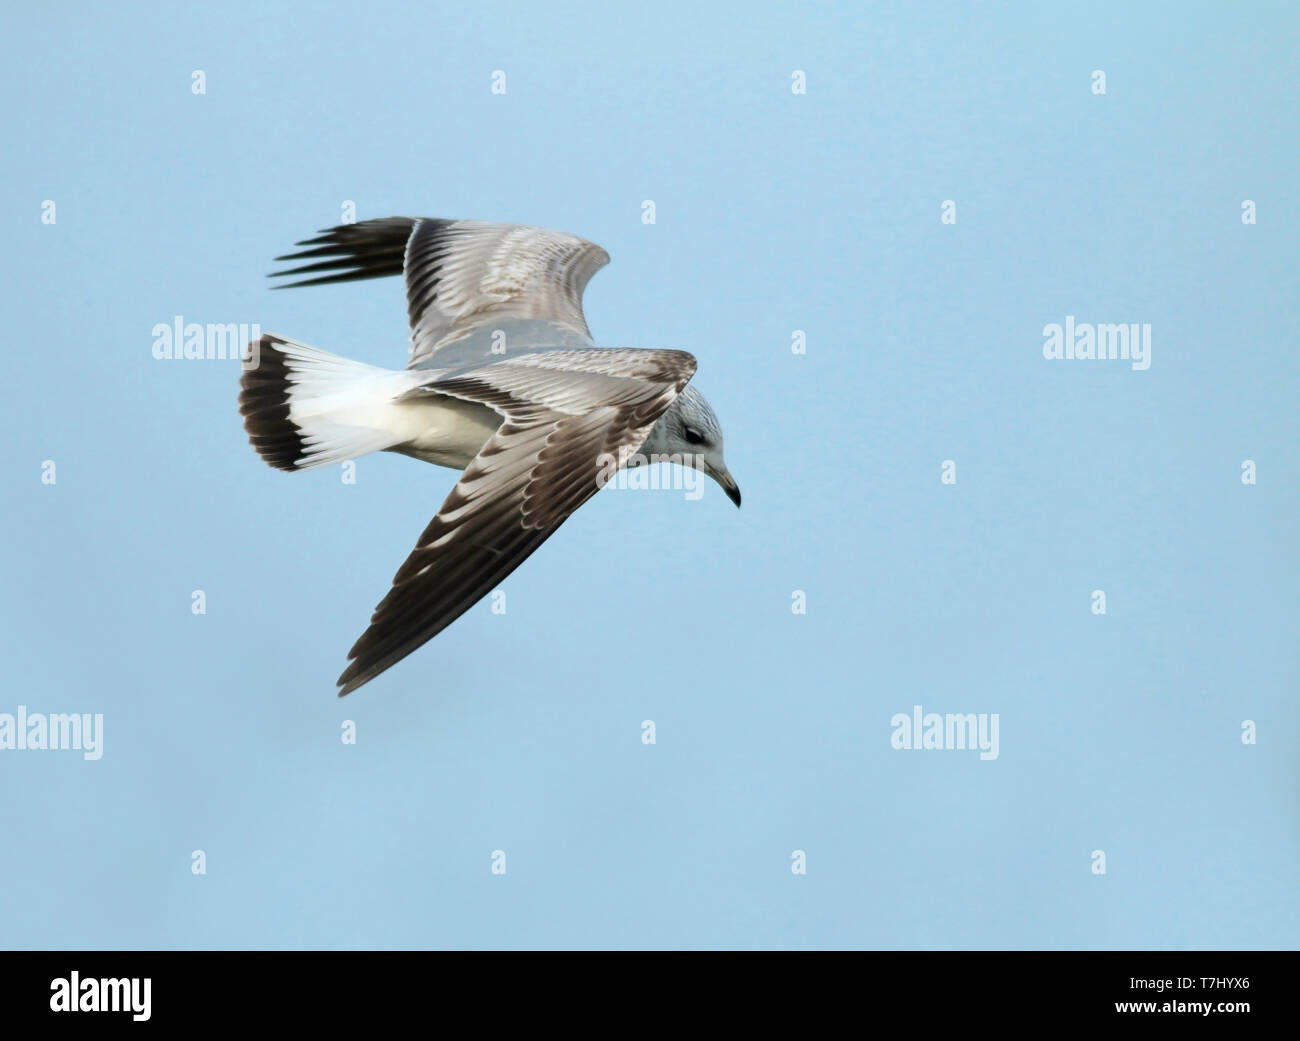 First-winter Common gull (Larus canus canus) in flight. Showing much dark in the tail. - Stock Image